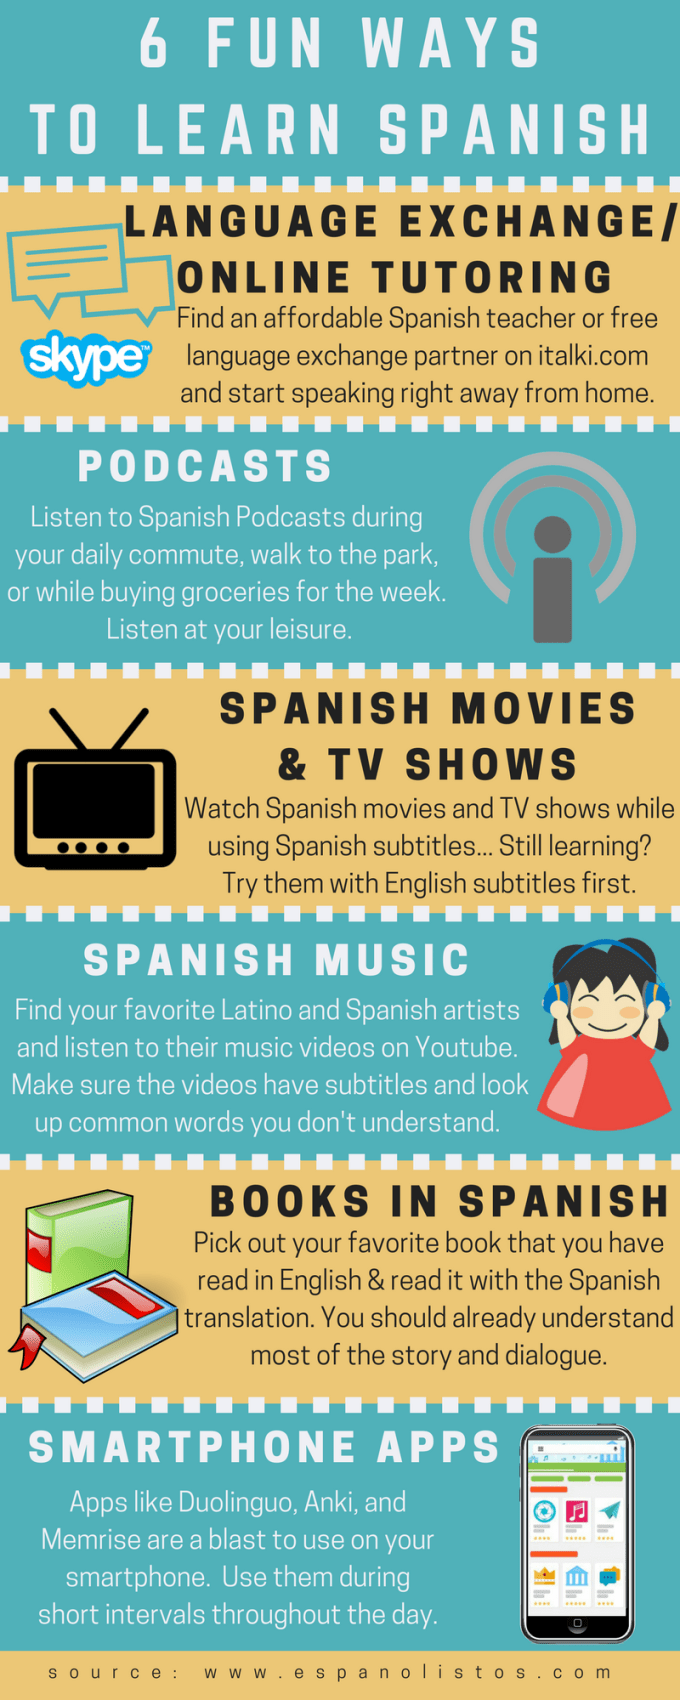 Fun Ways To Learn Spanish